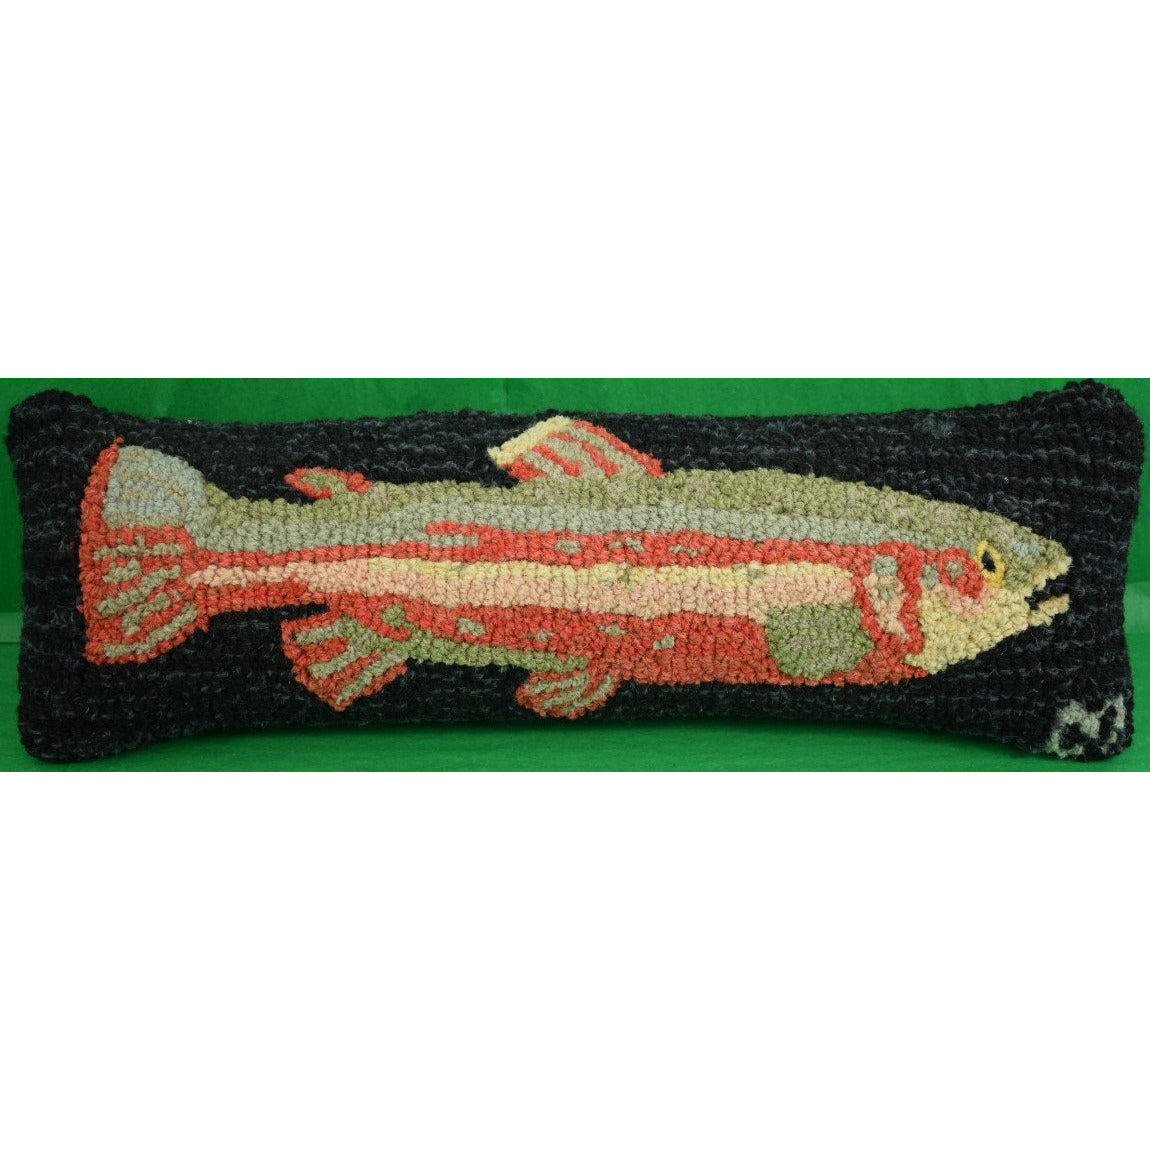 Trout Stitched Pillow